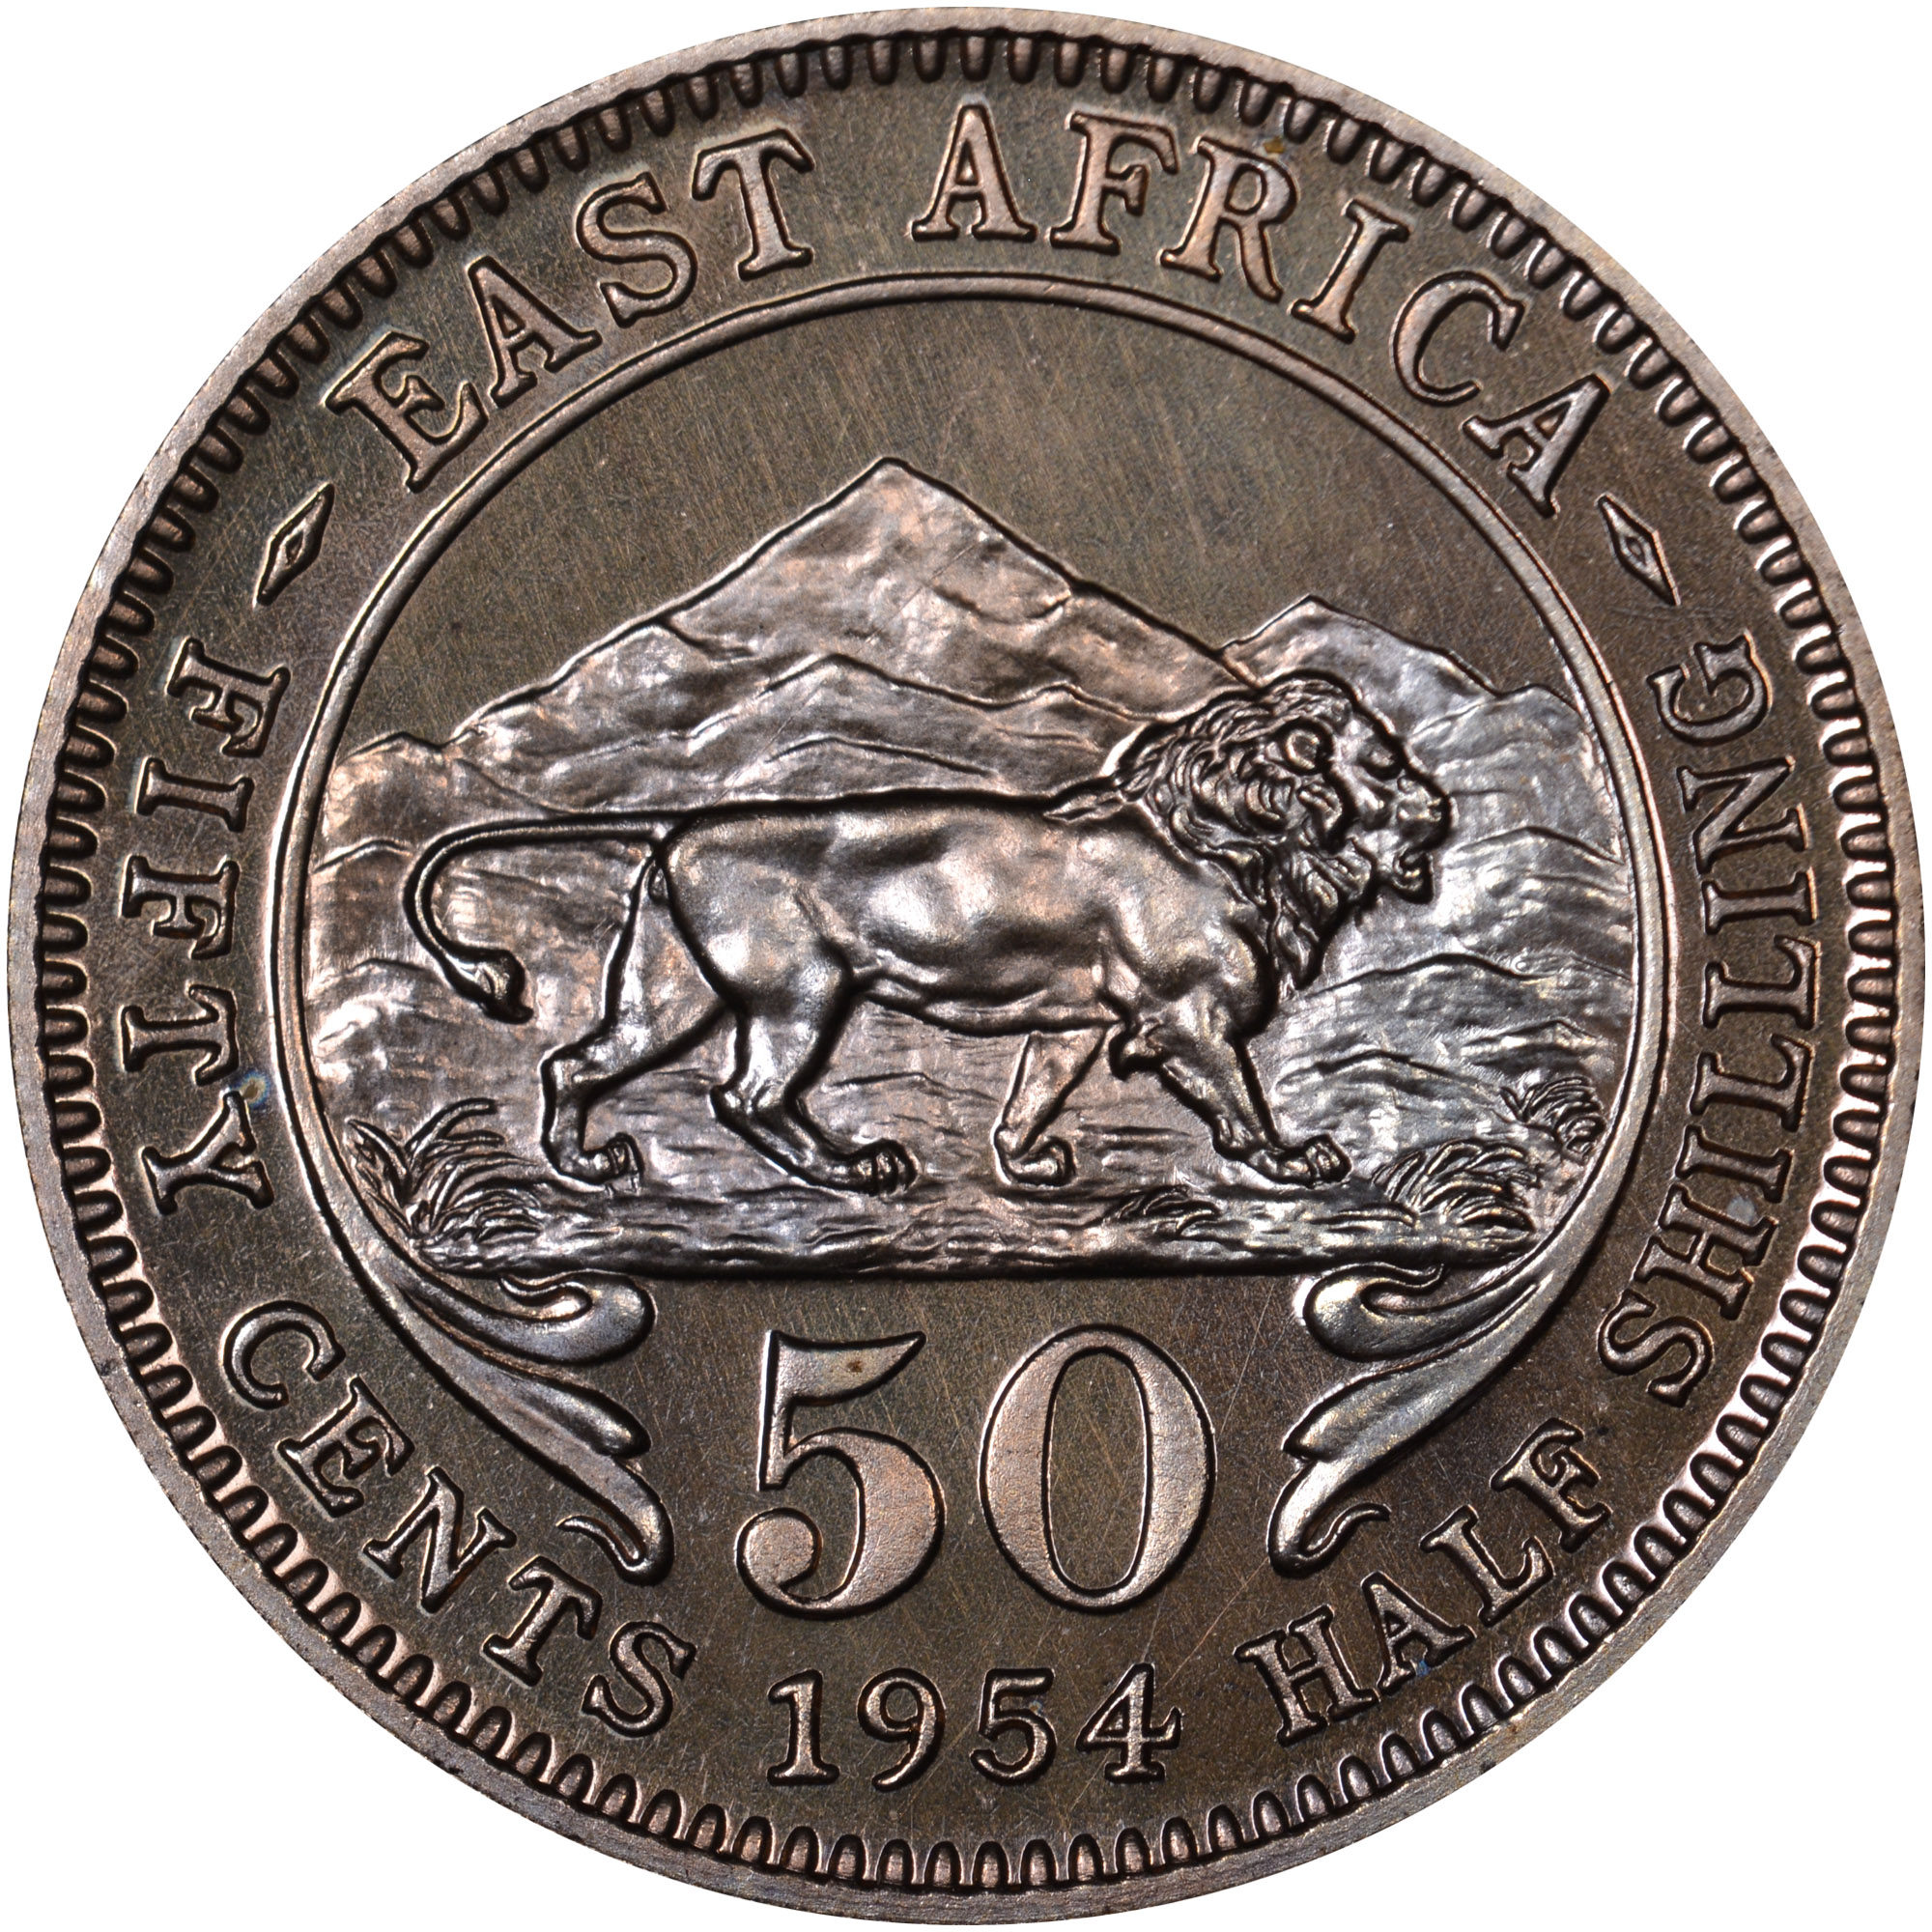 East Africa 50 Cents reverse